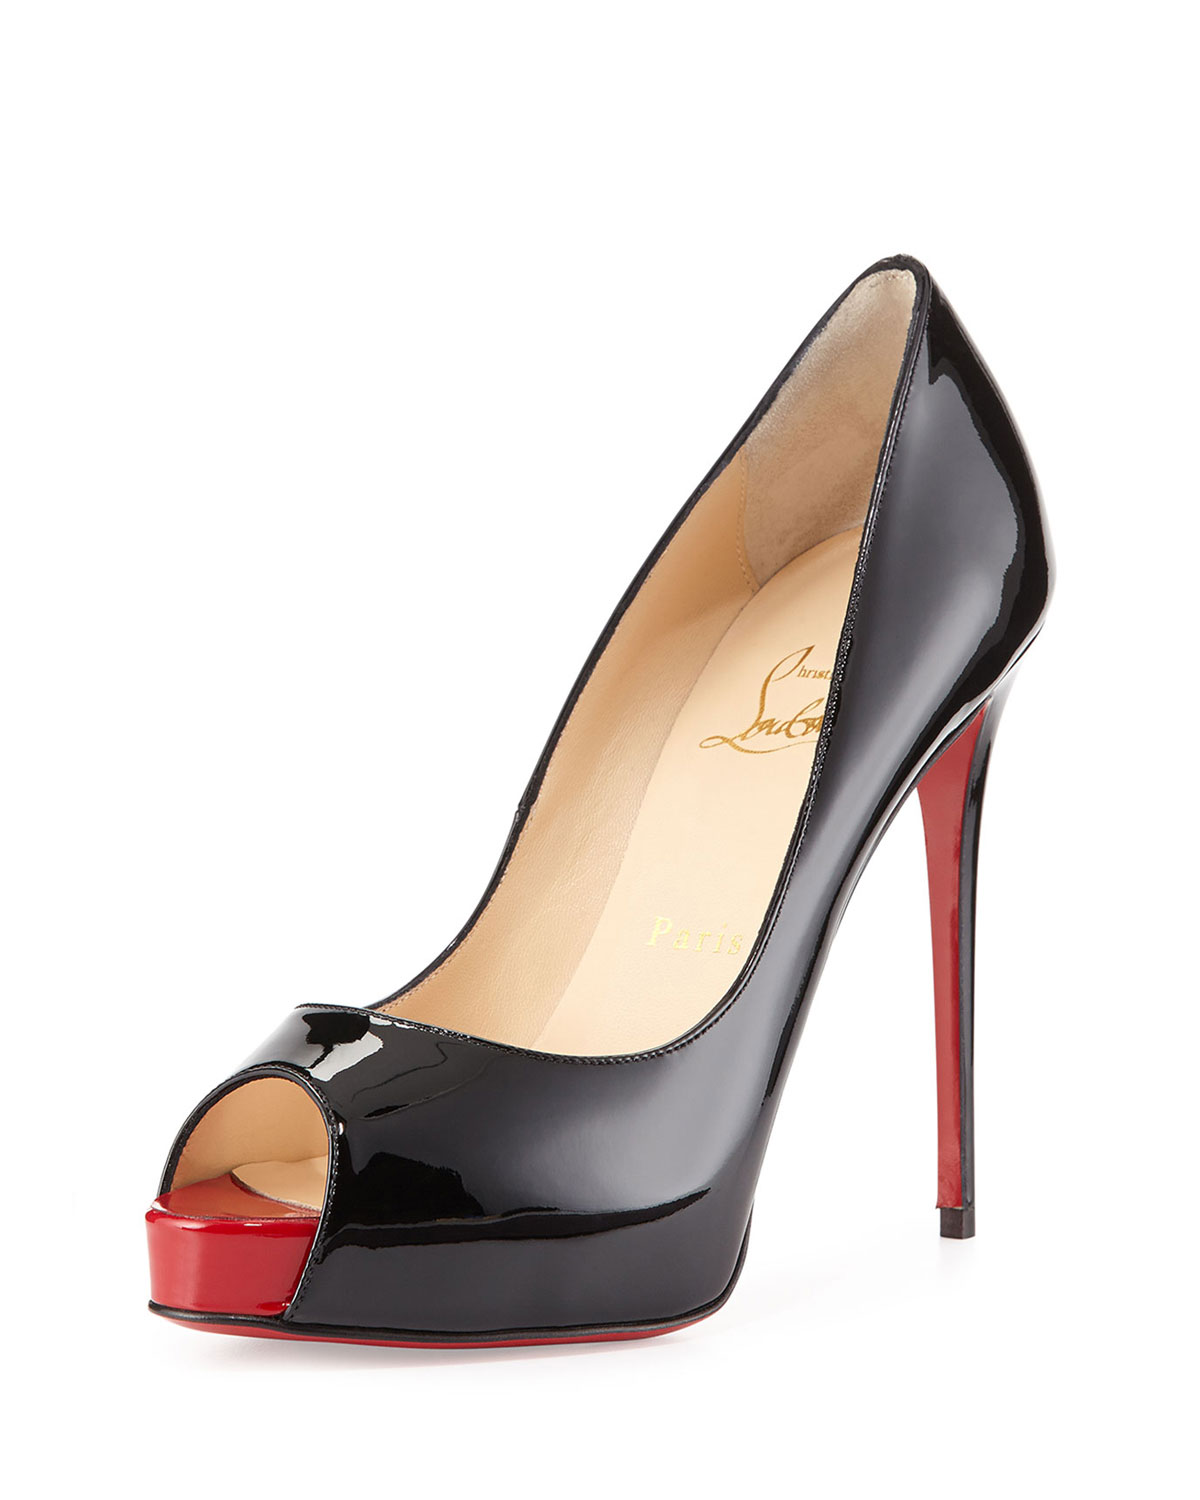 new product 9842c 21031 New Very Prive Patent Red Sole Pump in Black/Red